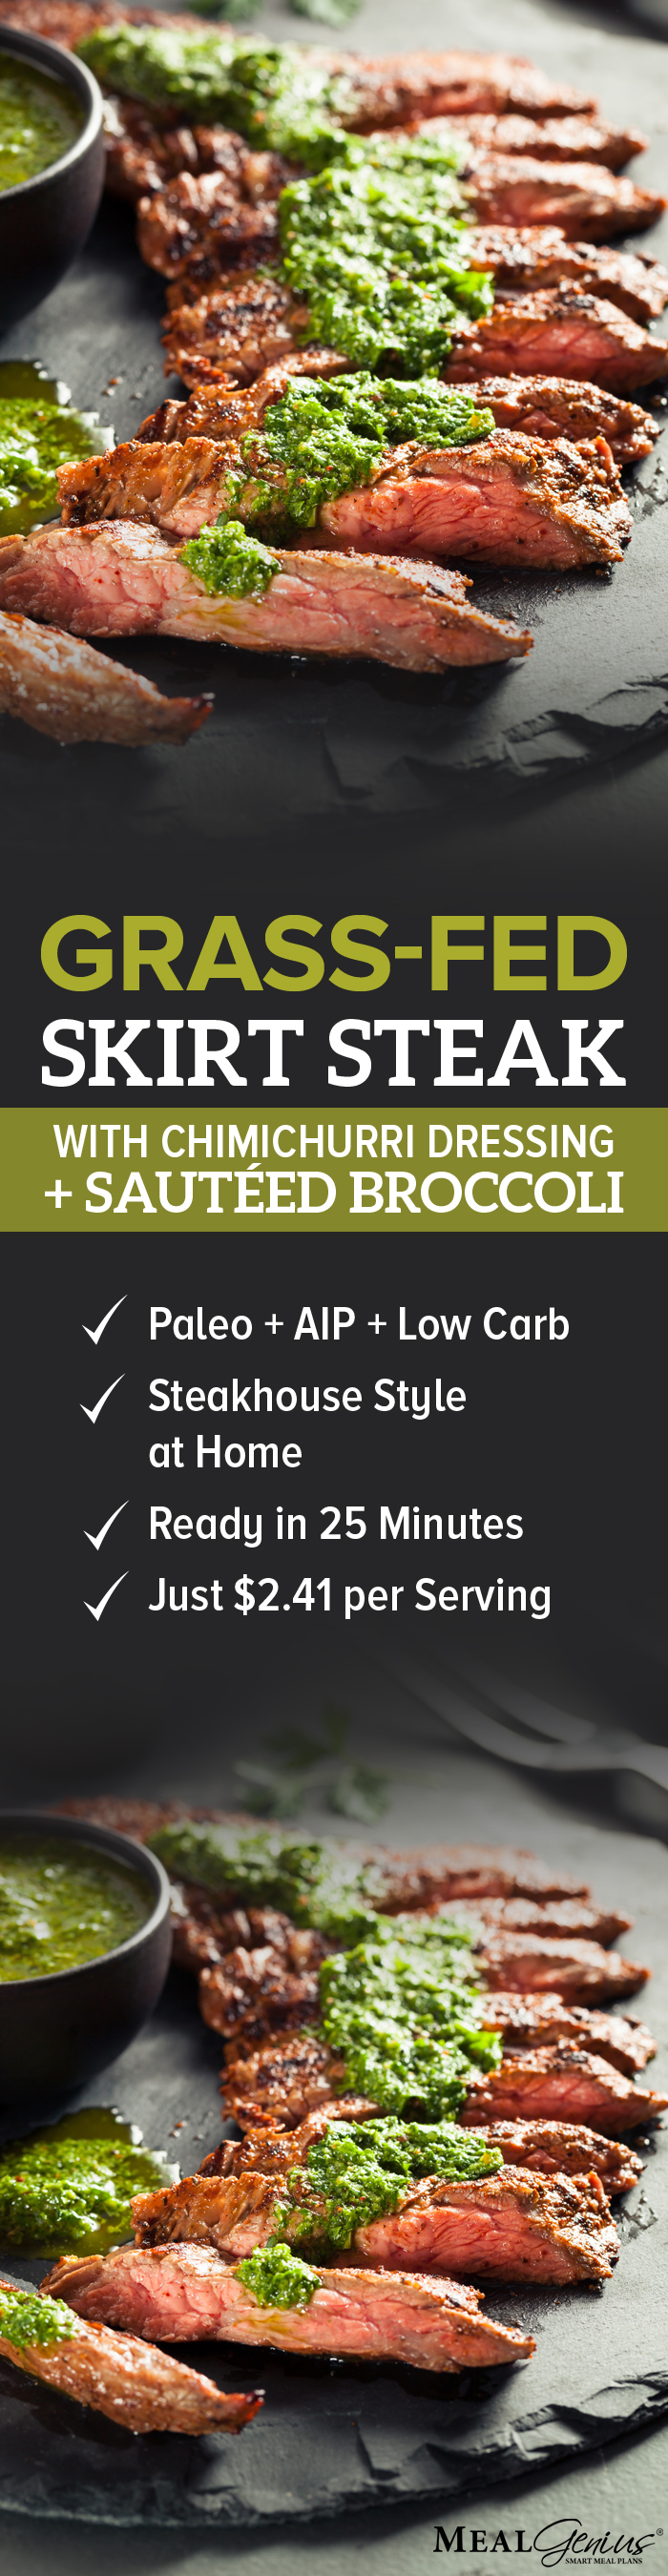 Grass-Fed Skirt Steak with Chimichurri and Broccoli - Meal Genius